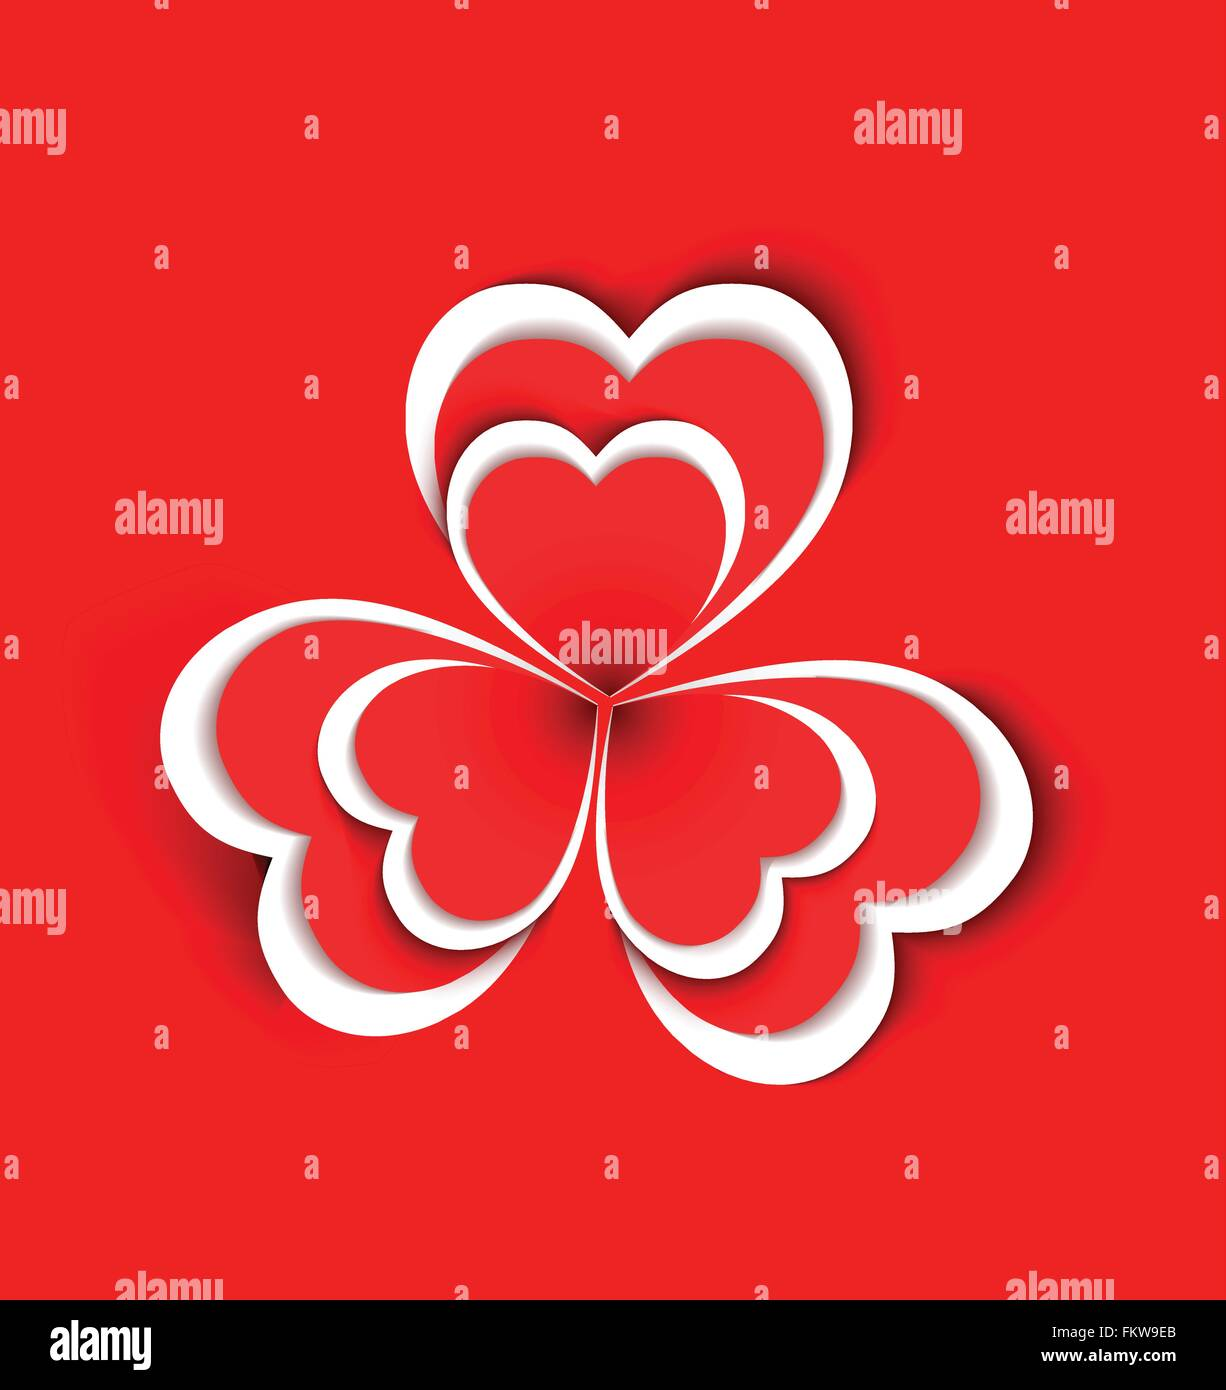 Conceptual flower shape made from paper hearts shape on red background - Stock Image